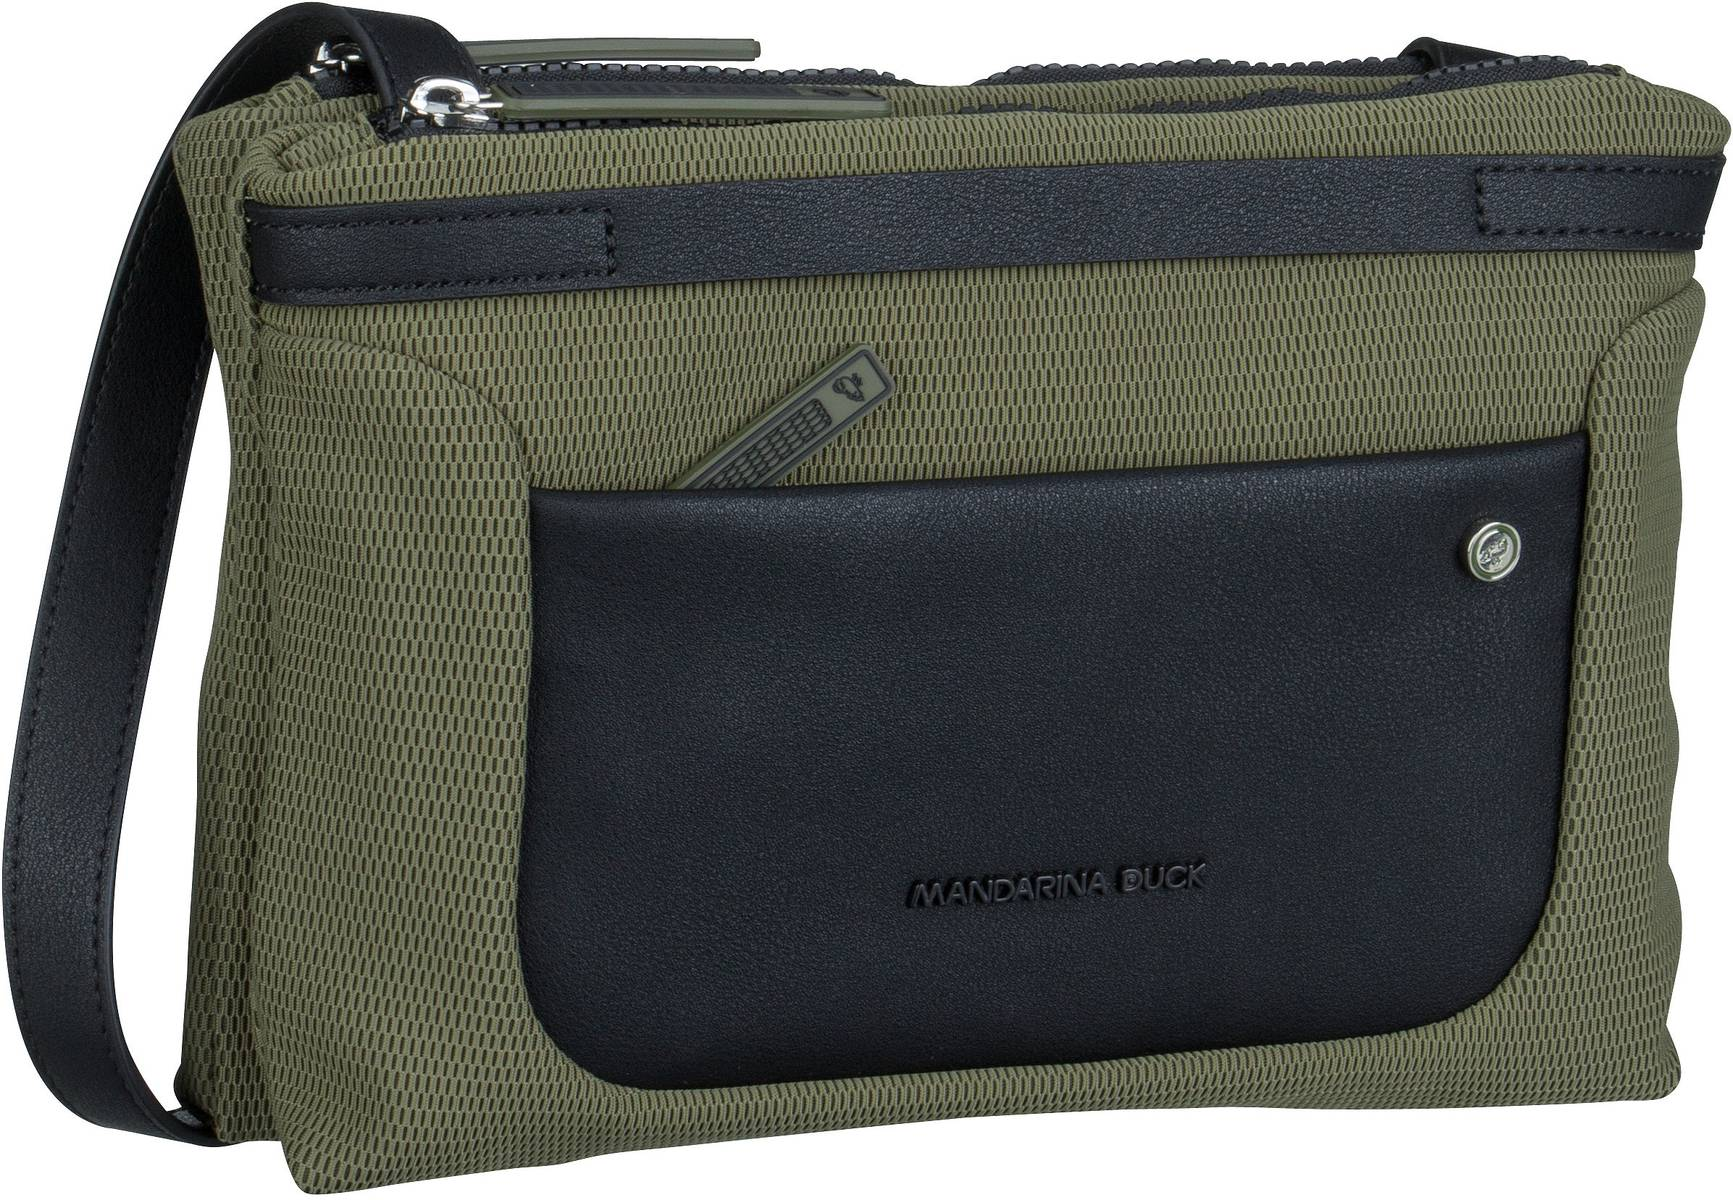 Umhängetasche Camden Shoulder Bag VBM02 Soldier